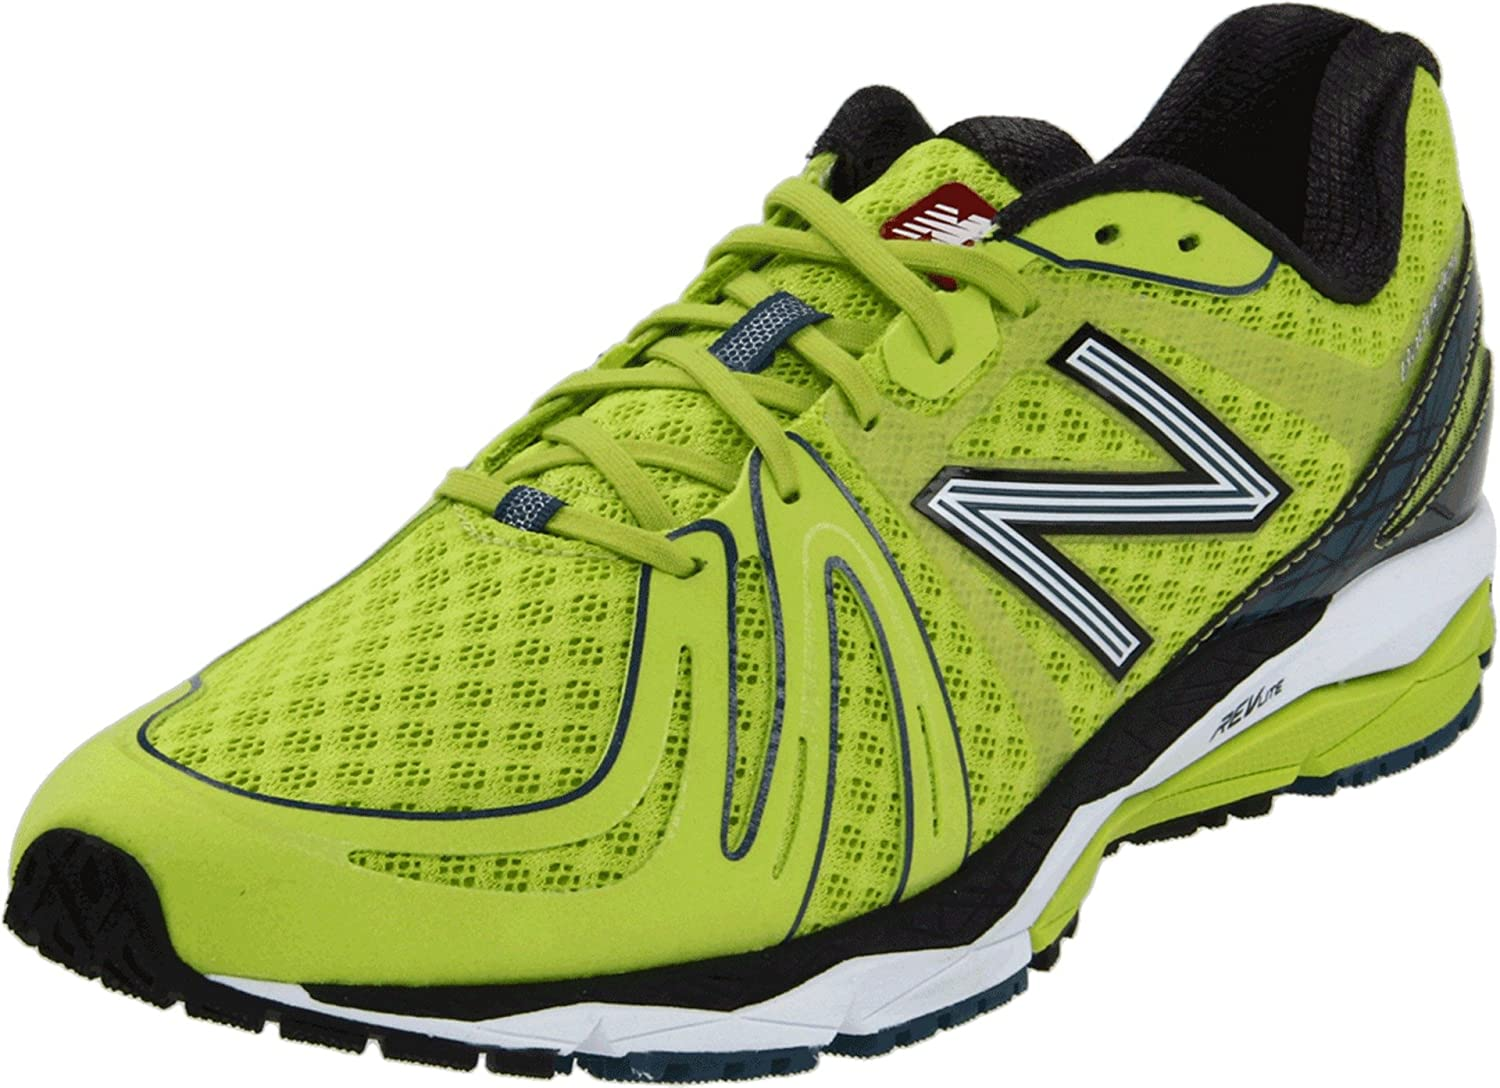 New Balance Men's M890B2 Running Shoe,Silver/Blue,11 2E US B005BVBPR0 12.5 D(M) US|Lime/Black